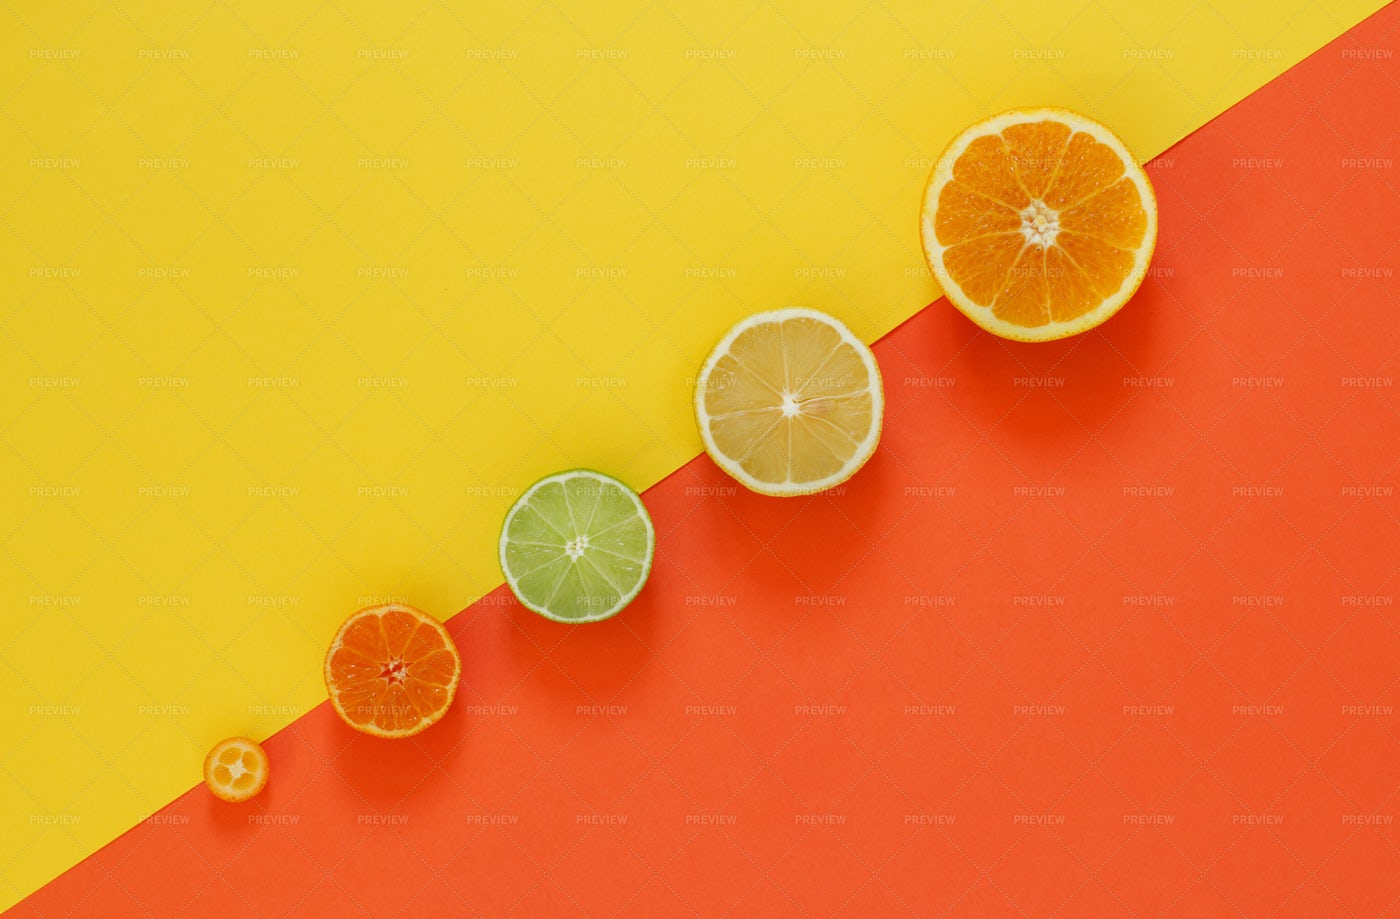 Citrus Fruits On Red And Yellow: Stock Photos